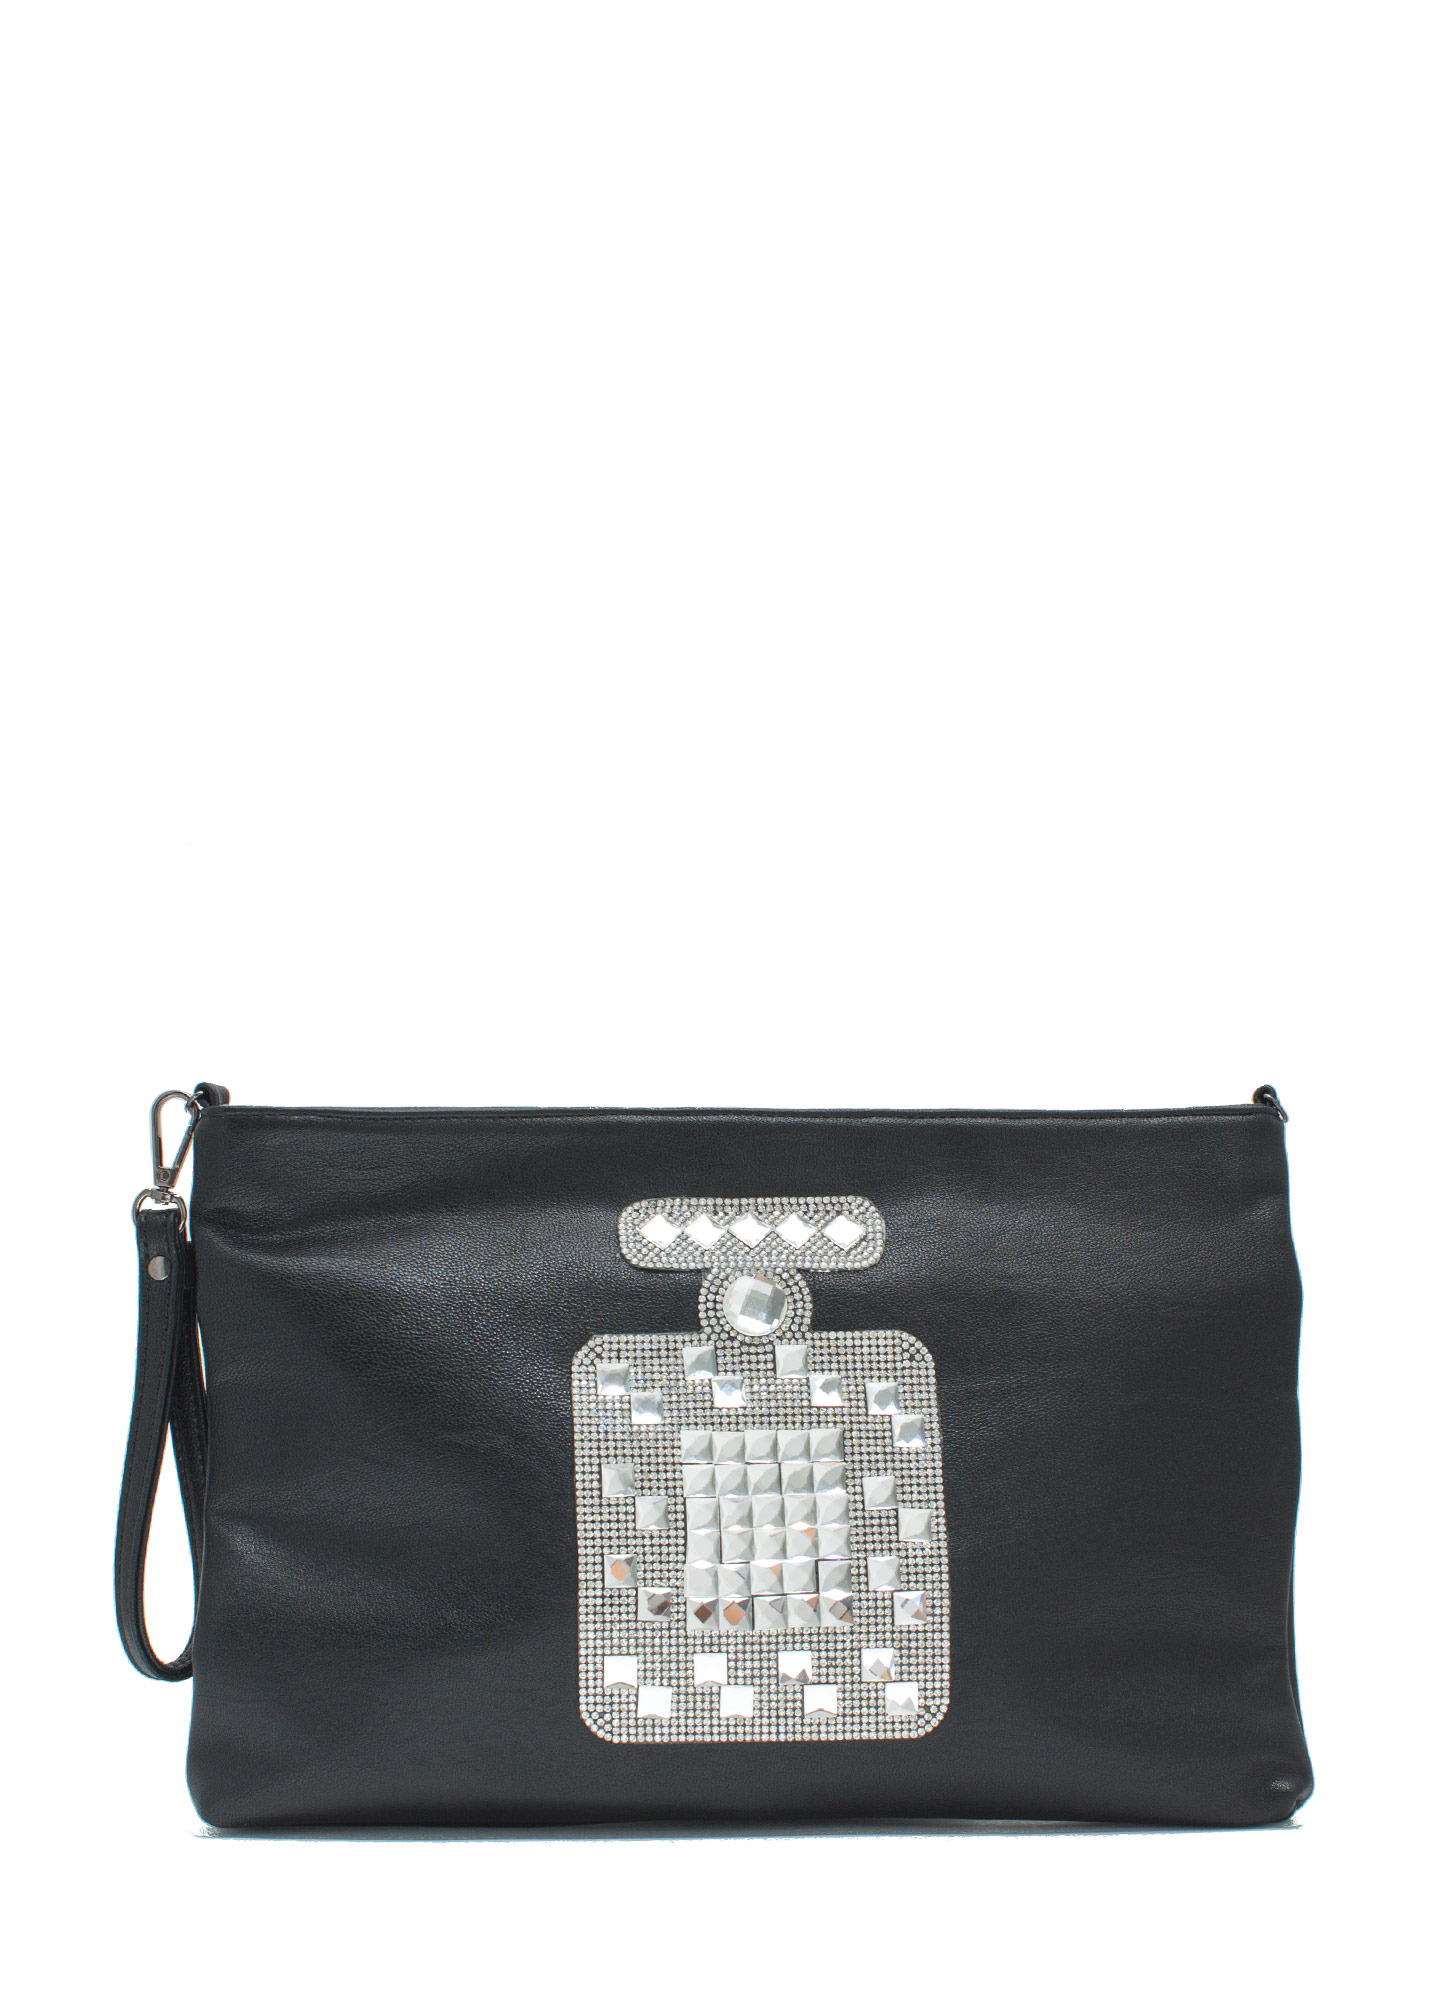 Make Scents Rhinestone Perfume Clutch BLACK